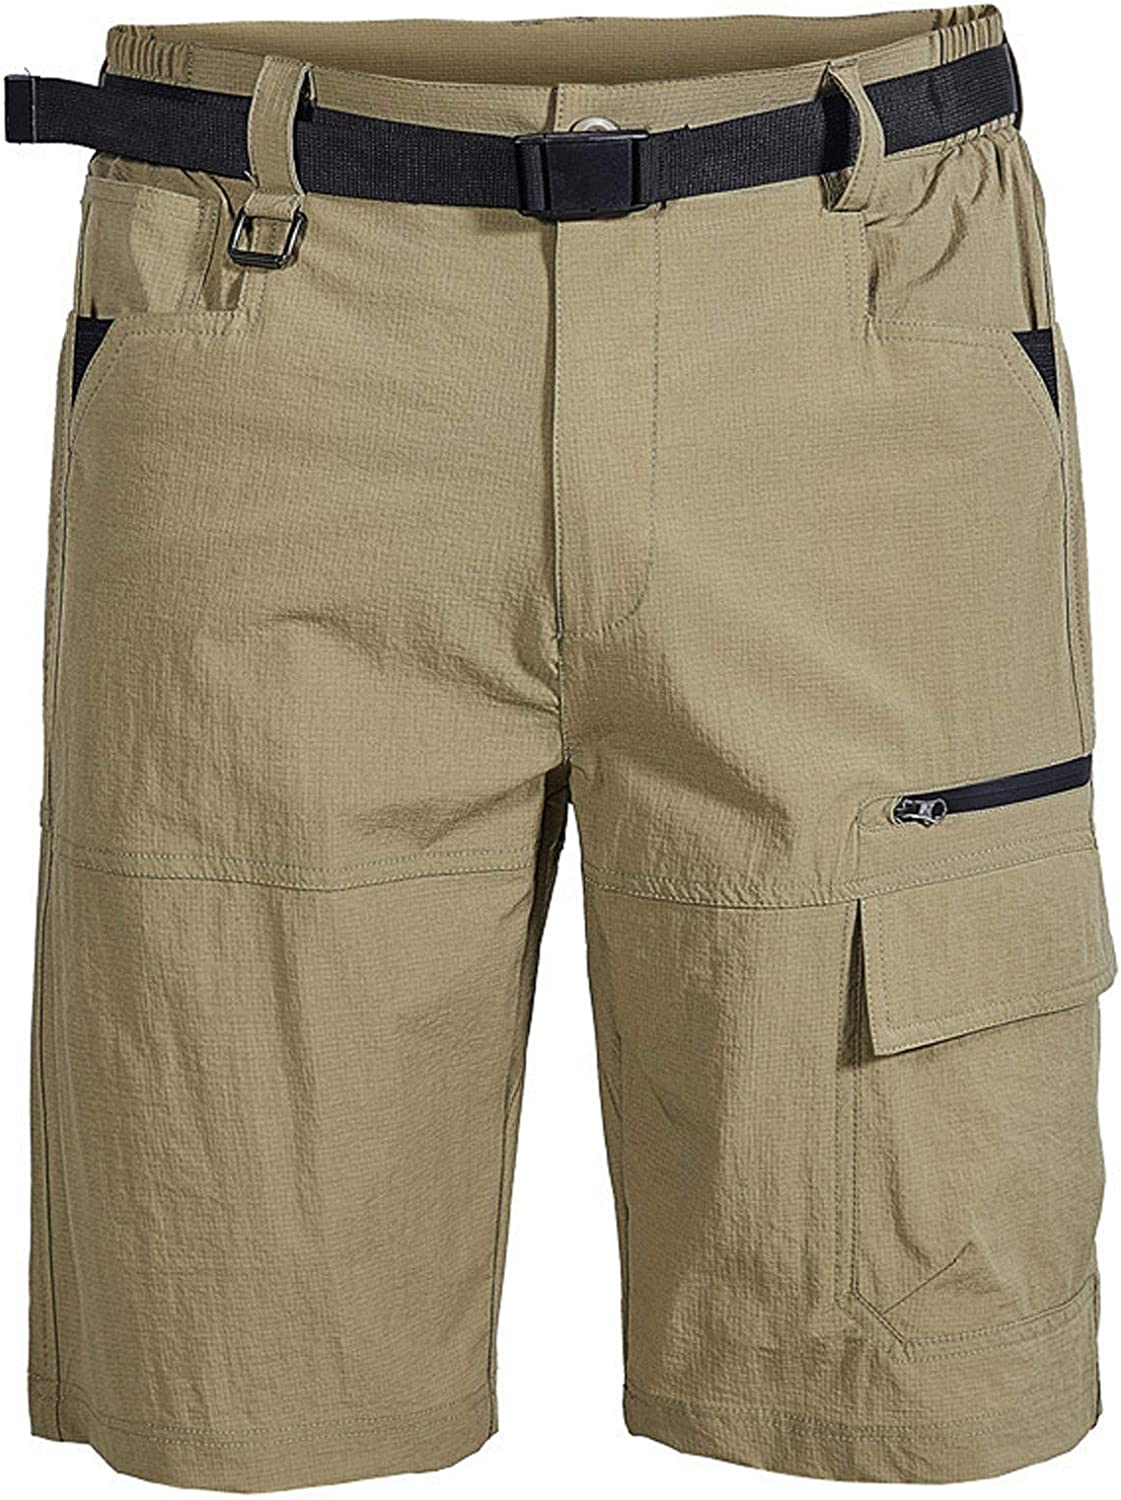 KIMOH Men's Hiking Quick-Dry Outdoor Cargo Shorts Loose Fitness